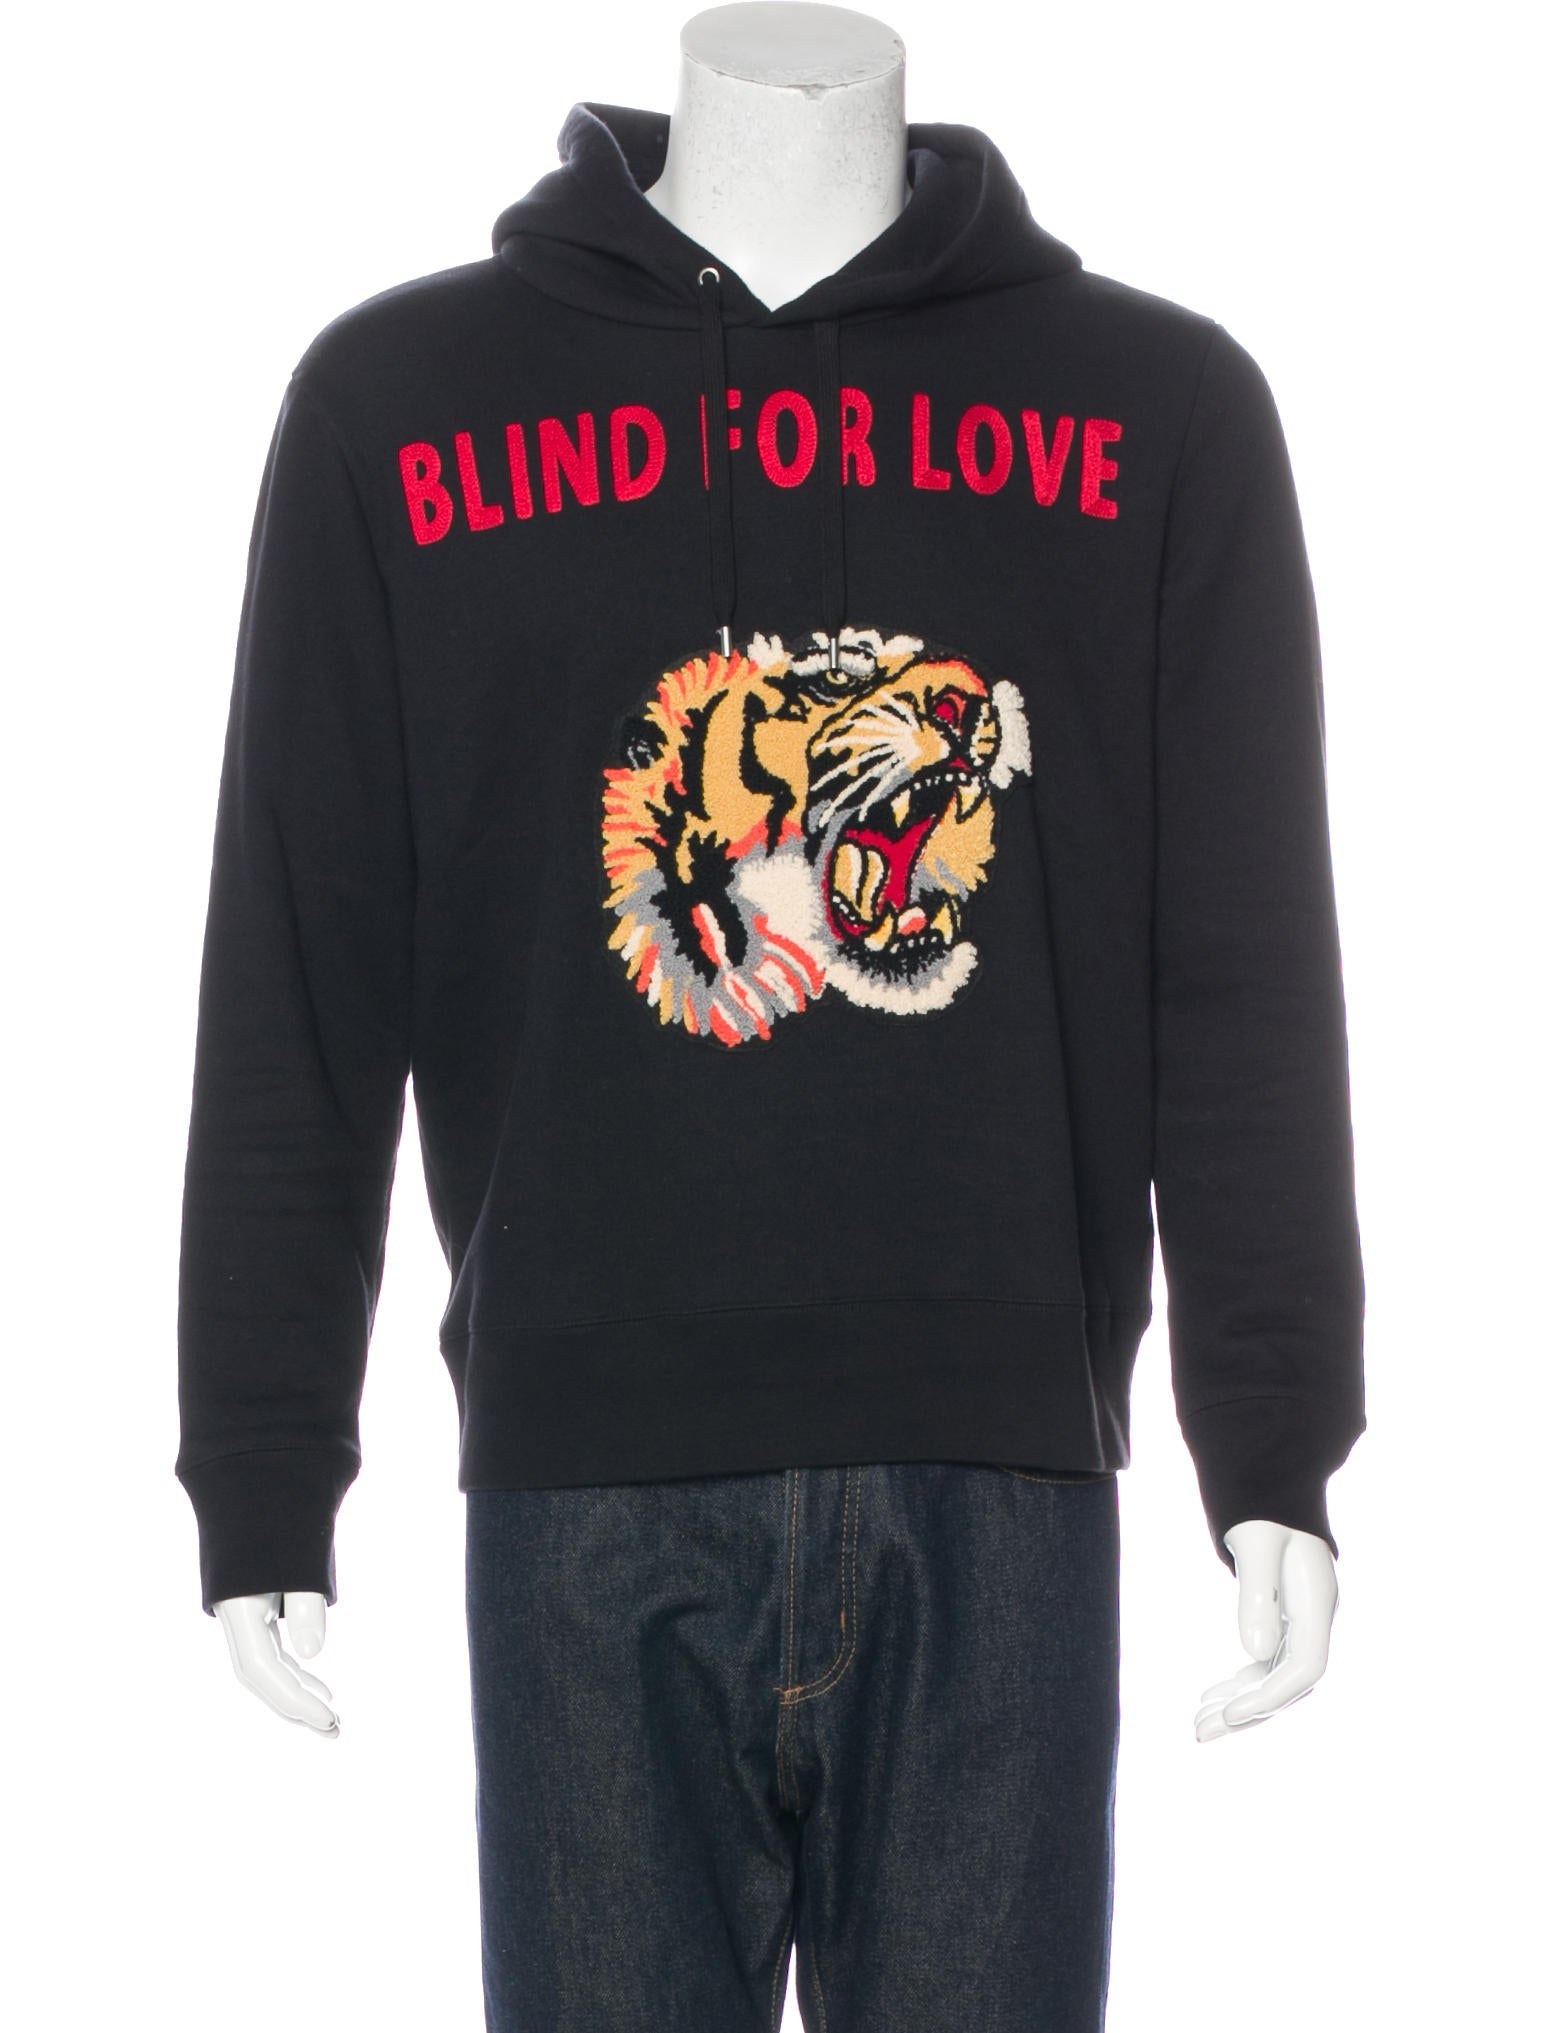 Gucci 2017 Blind For Love Tiger Hoodie Clothing